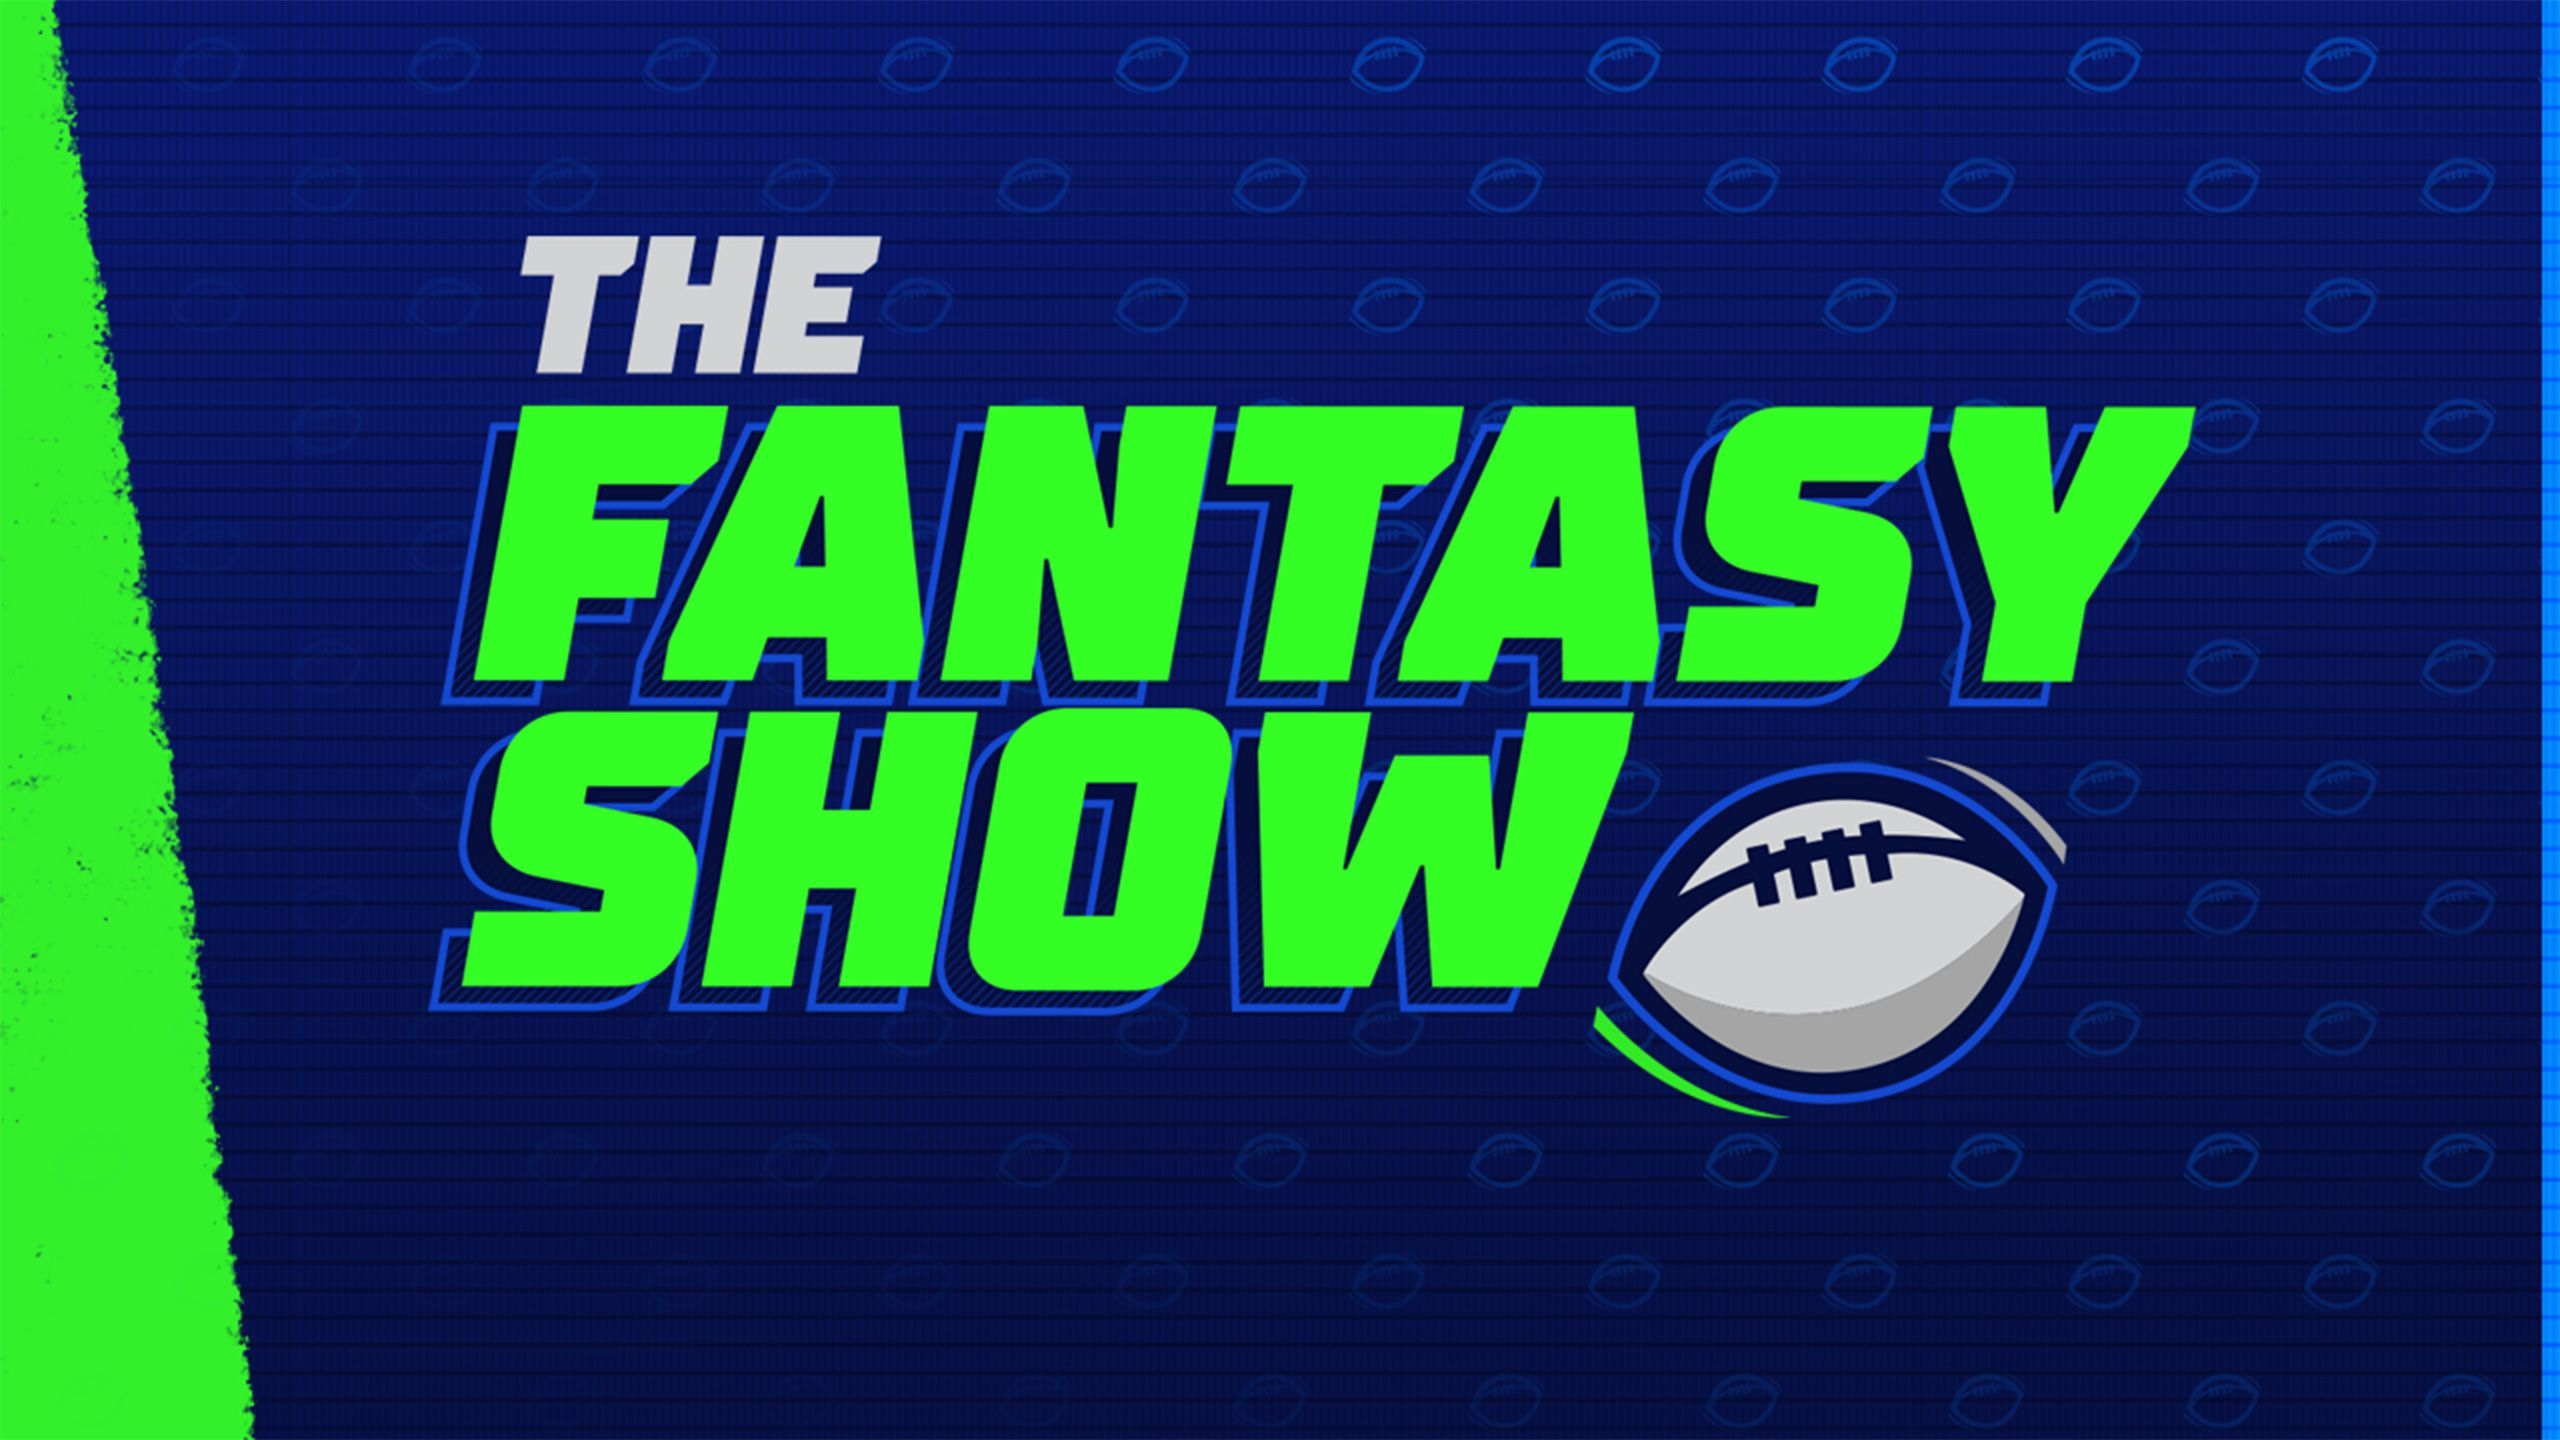 Mon, 12/18 - The Fantasy Show